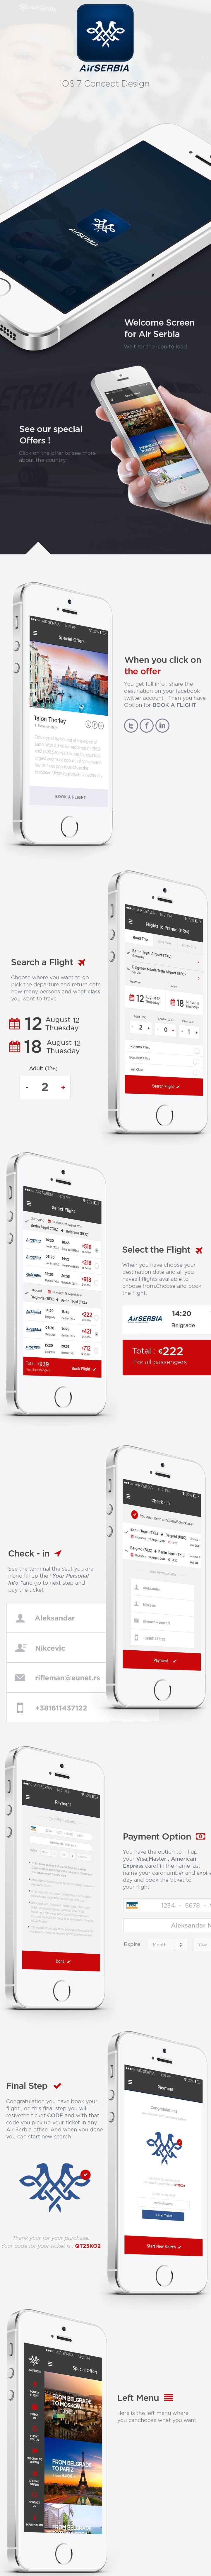 Air Serbia Flight Search App